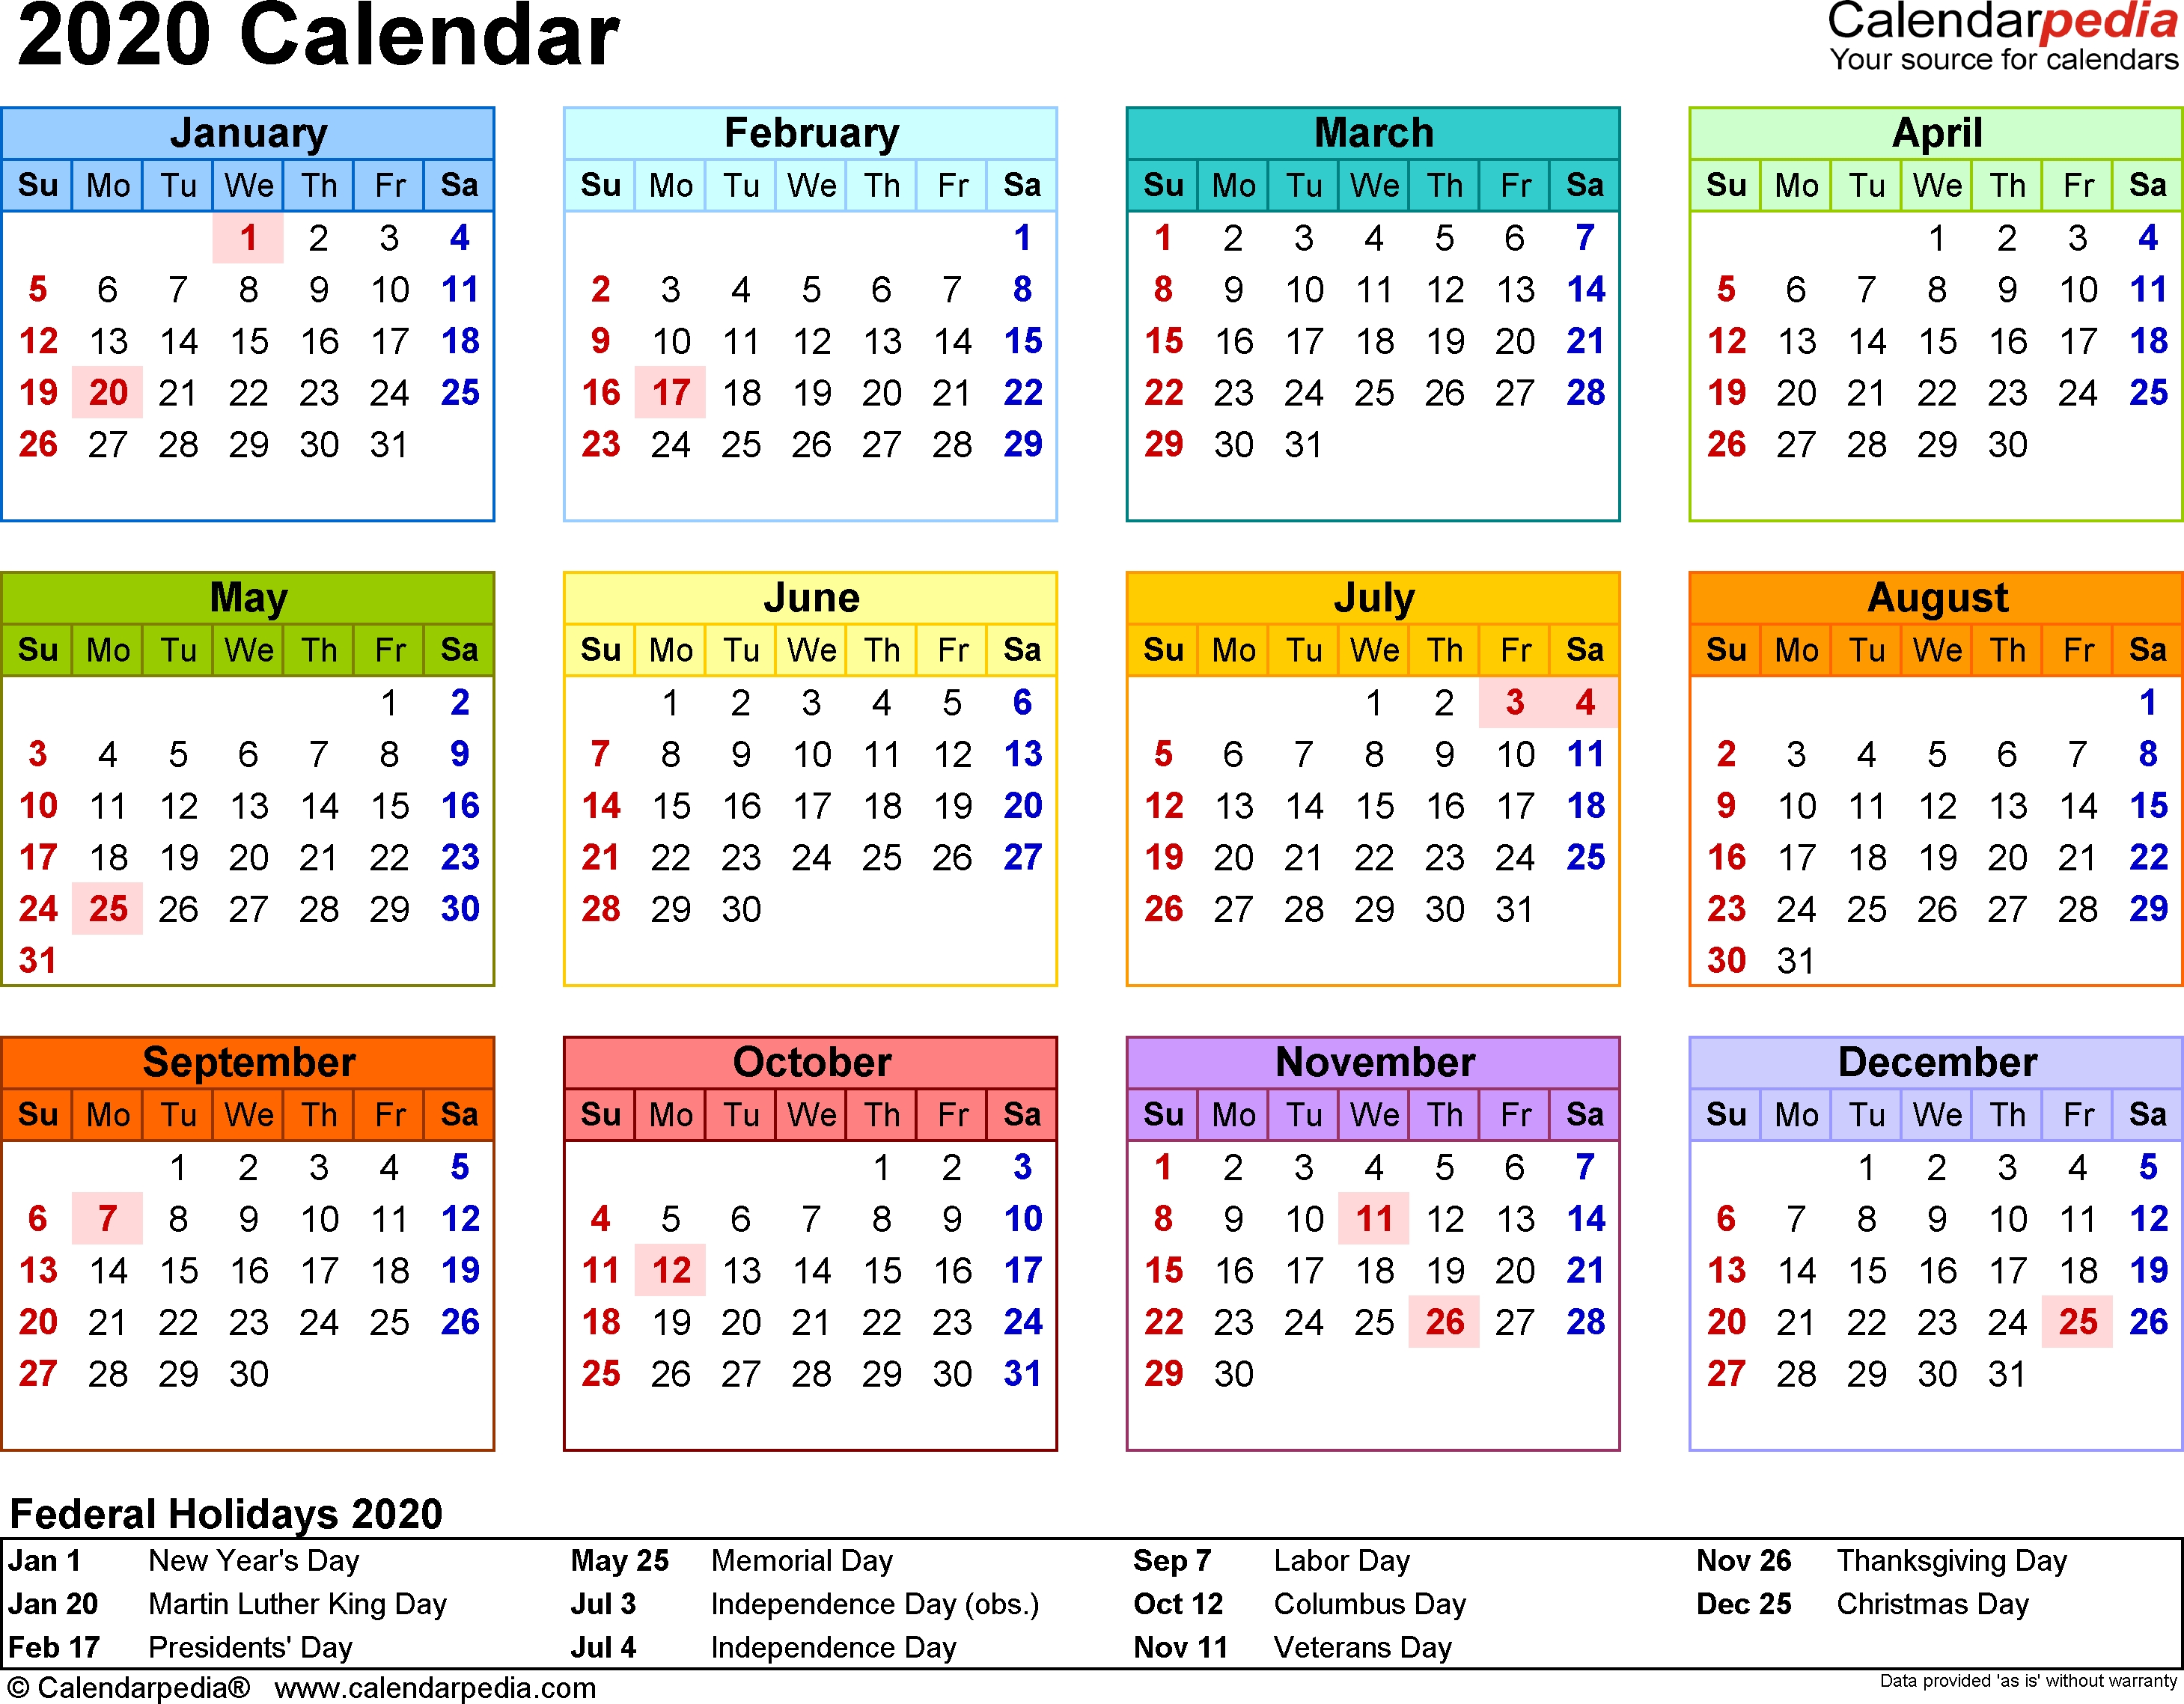 2020 Calendar - Free Printable Microsoft Word Templates regarding 2020 Calendar Weeks Numbered Excel